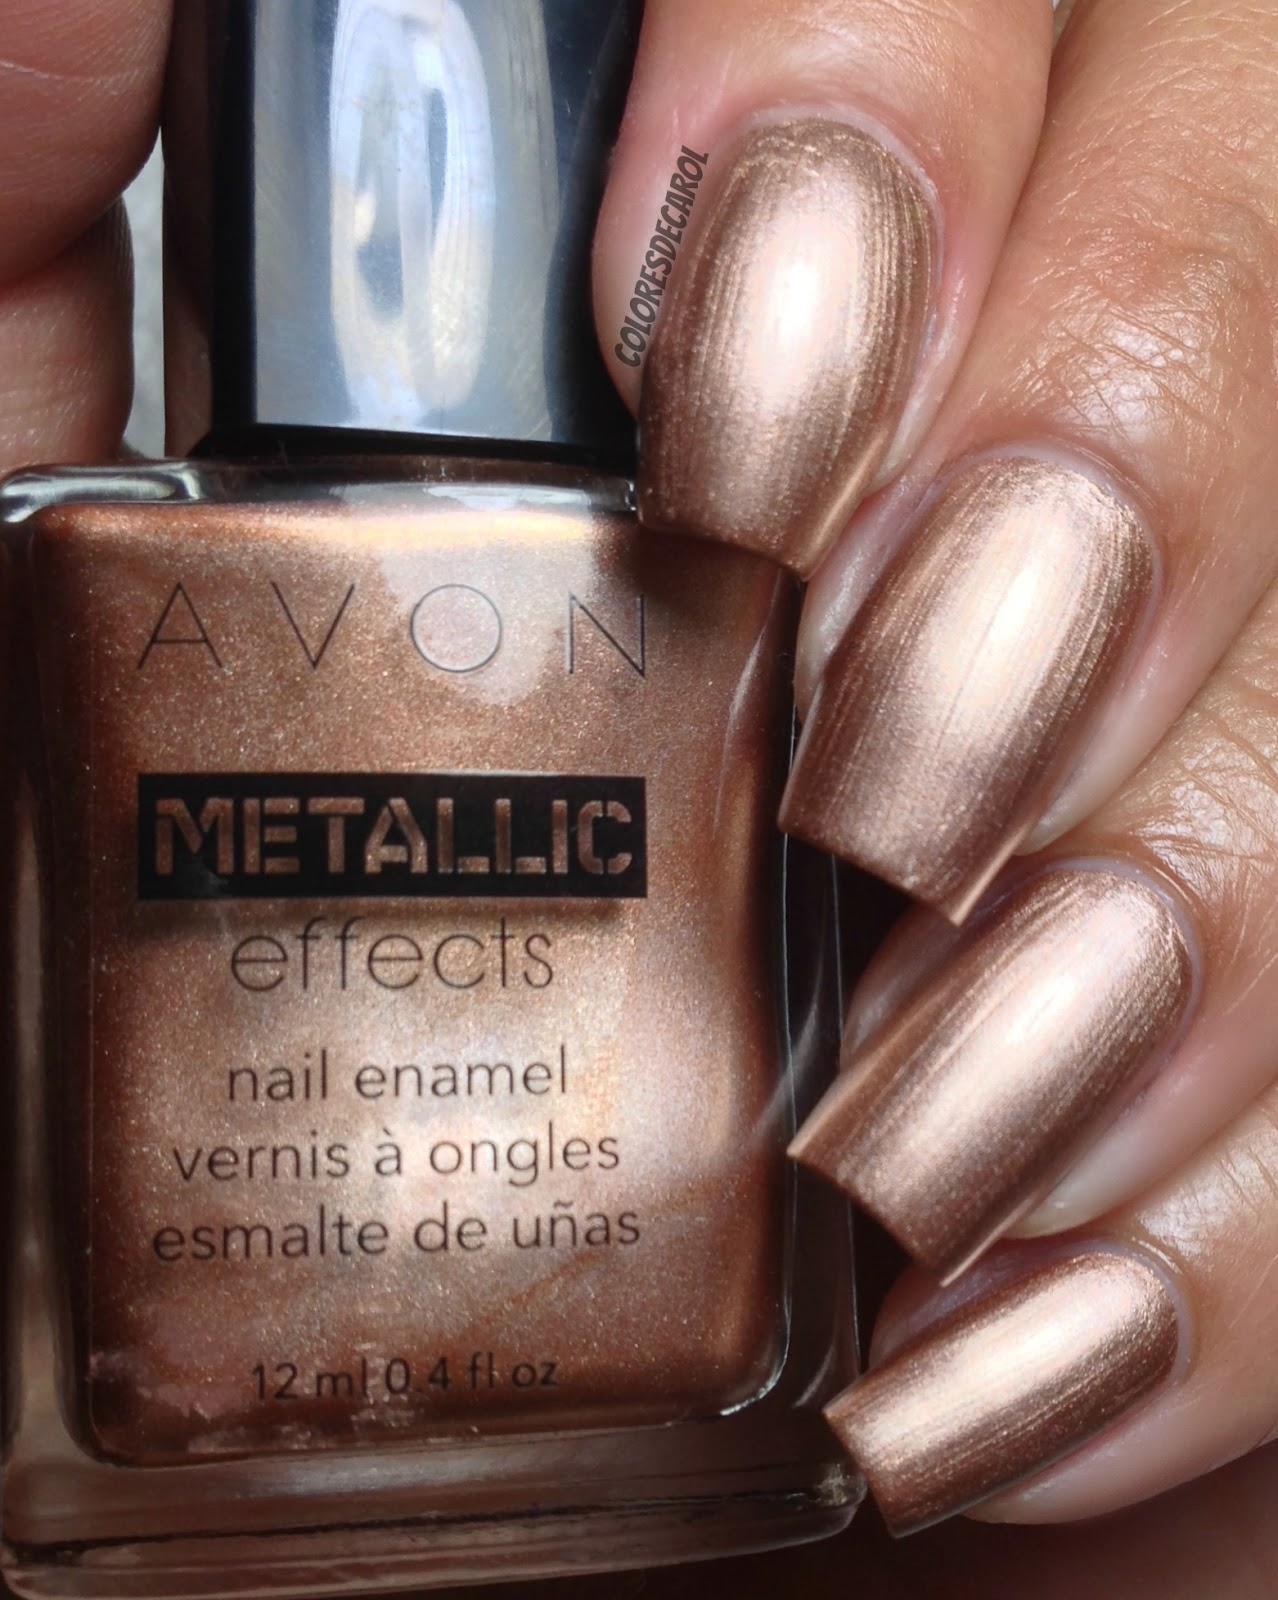 Colores de Carol: Avon Metallic Effects, Swatches and Review